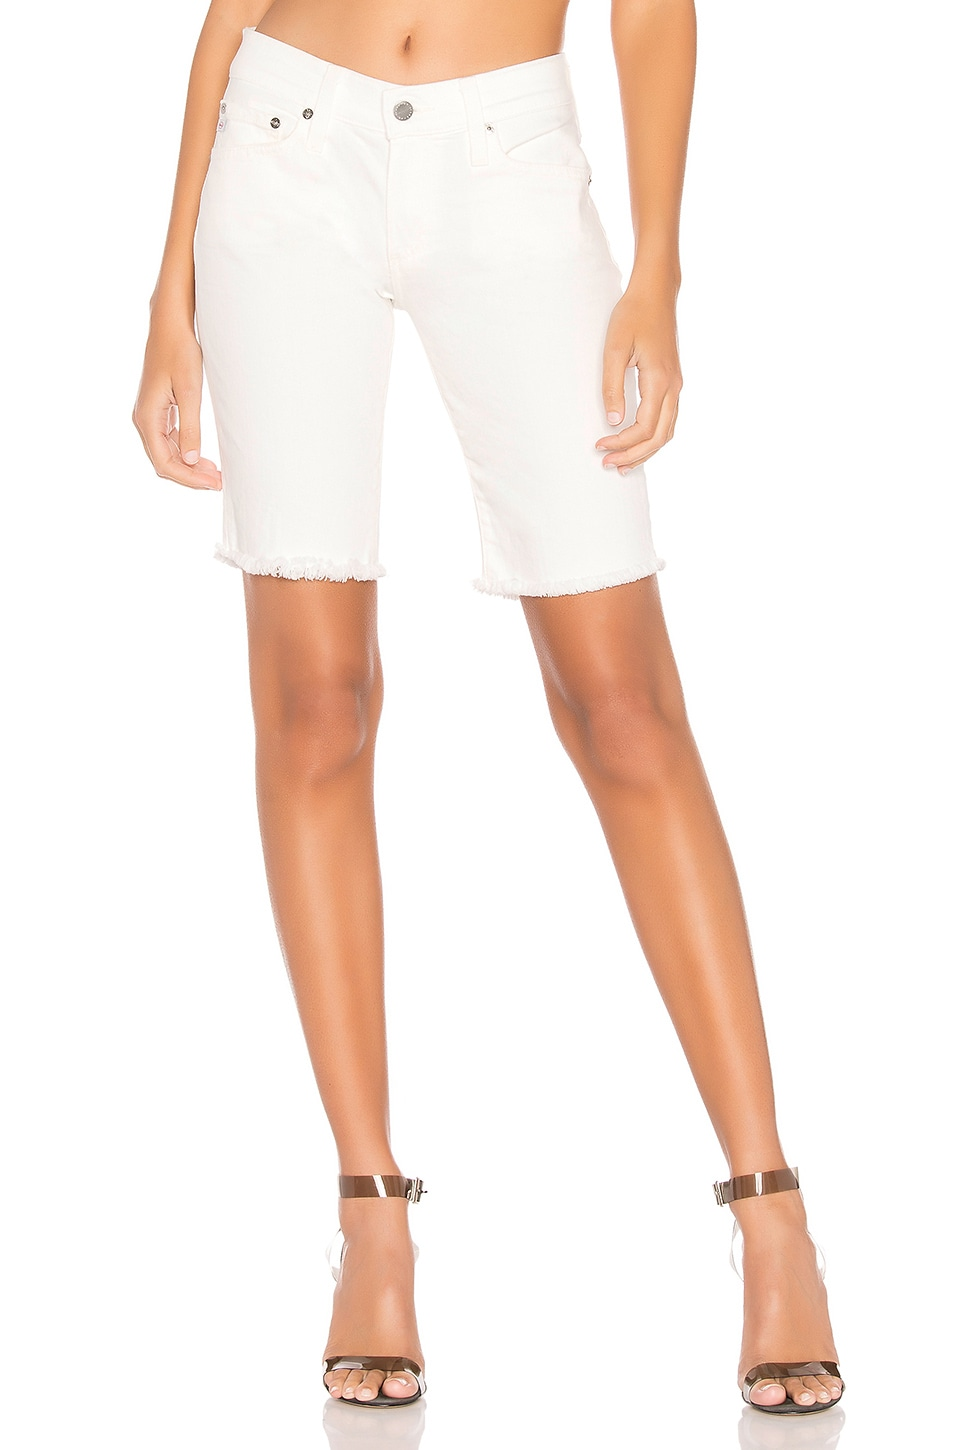 AG Adriano Goldschmied Nikki Short in 1 Year Tonal White